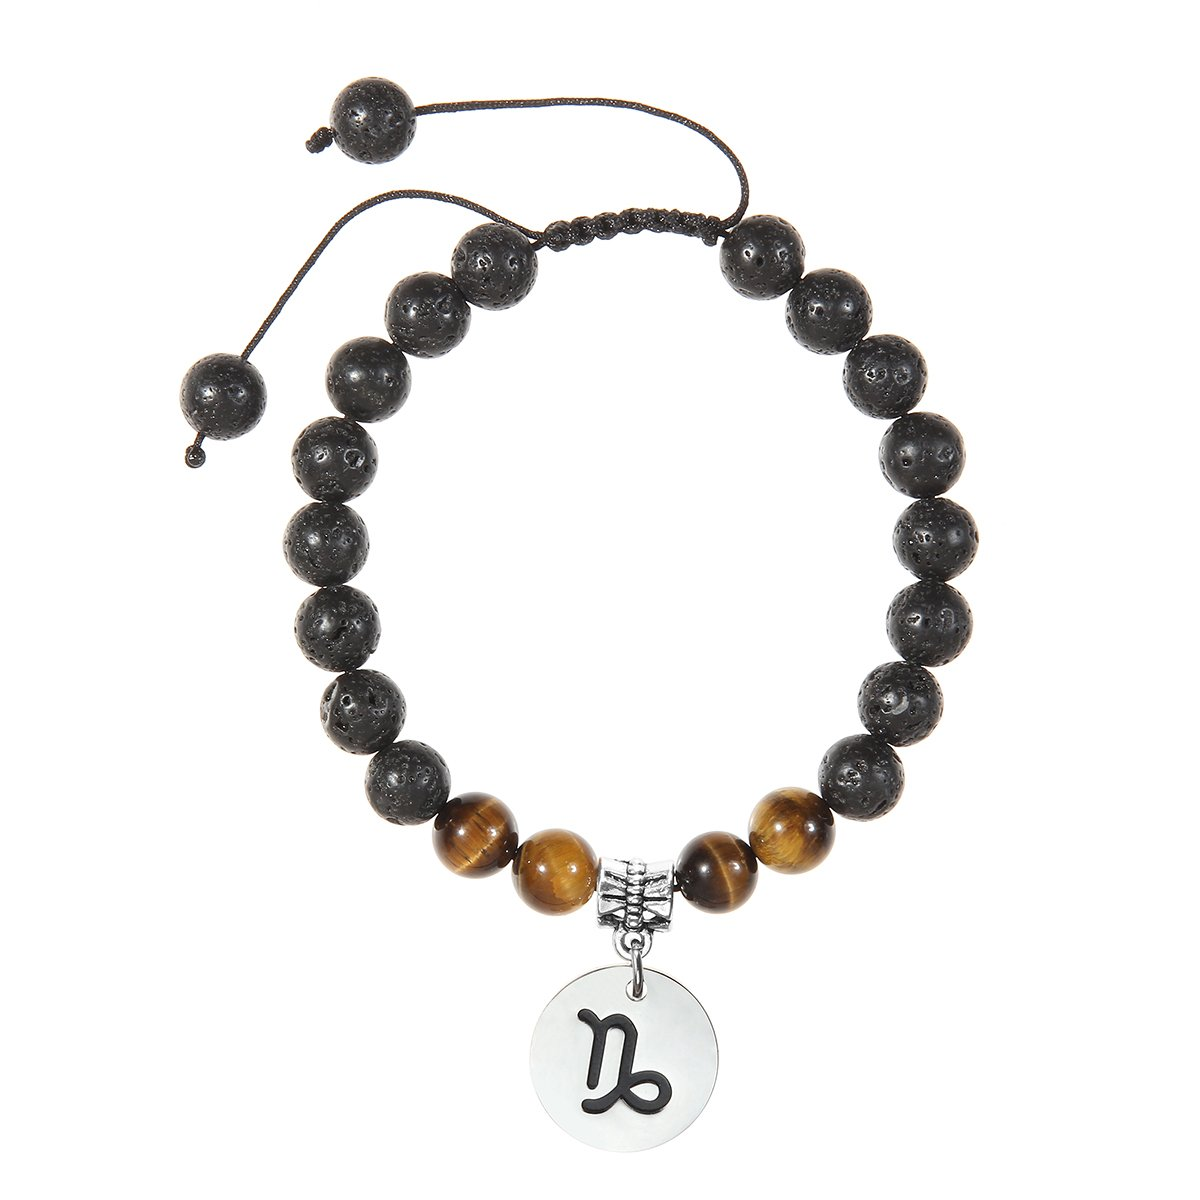 Meibai Handmade 8mm Lava Rock Tiger Eye Natural Stone Beads Bracelet with Constellation Zodiac Sign Charm Adjustable Size Chenzhou Meibai Jewelry Co. Ltd